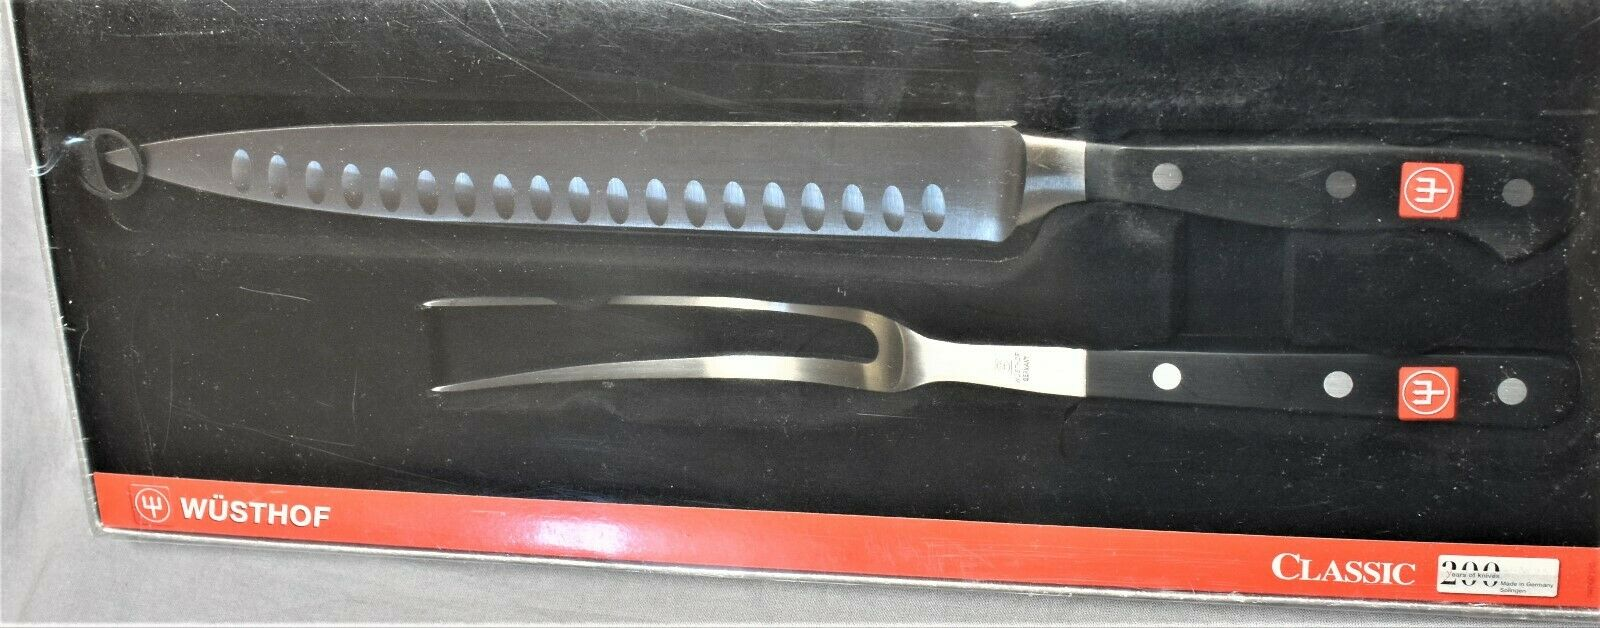 Nouveau Wusthof 4524 23 cm Classic carving set 9  Hollow Ground KNIFE & FORK 2 PC